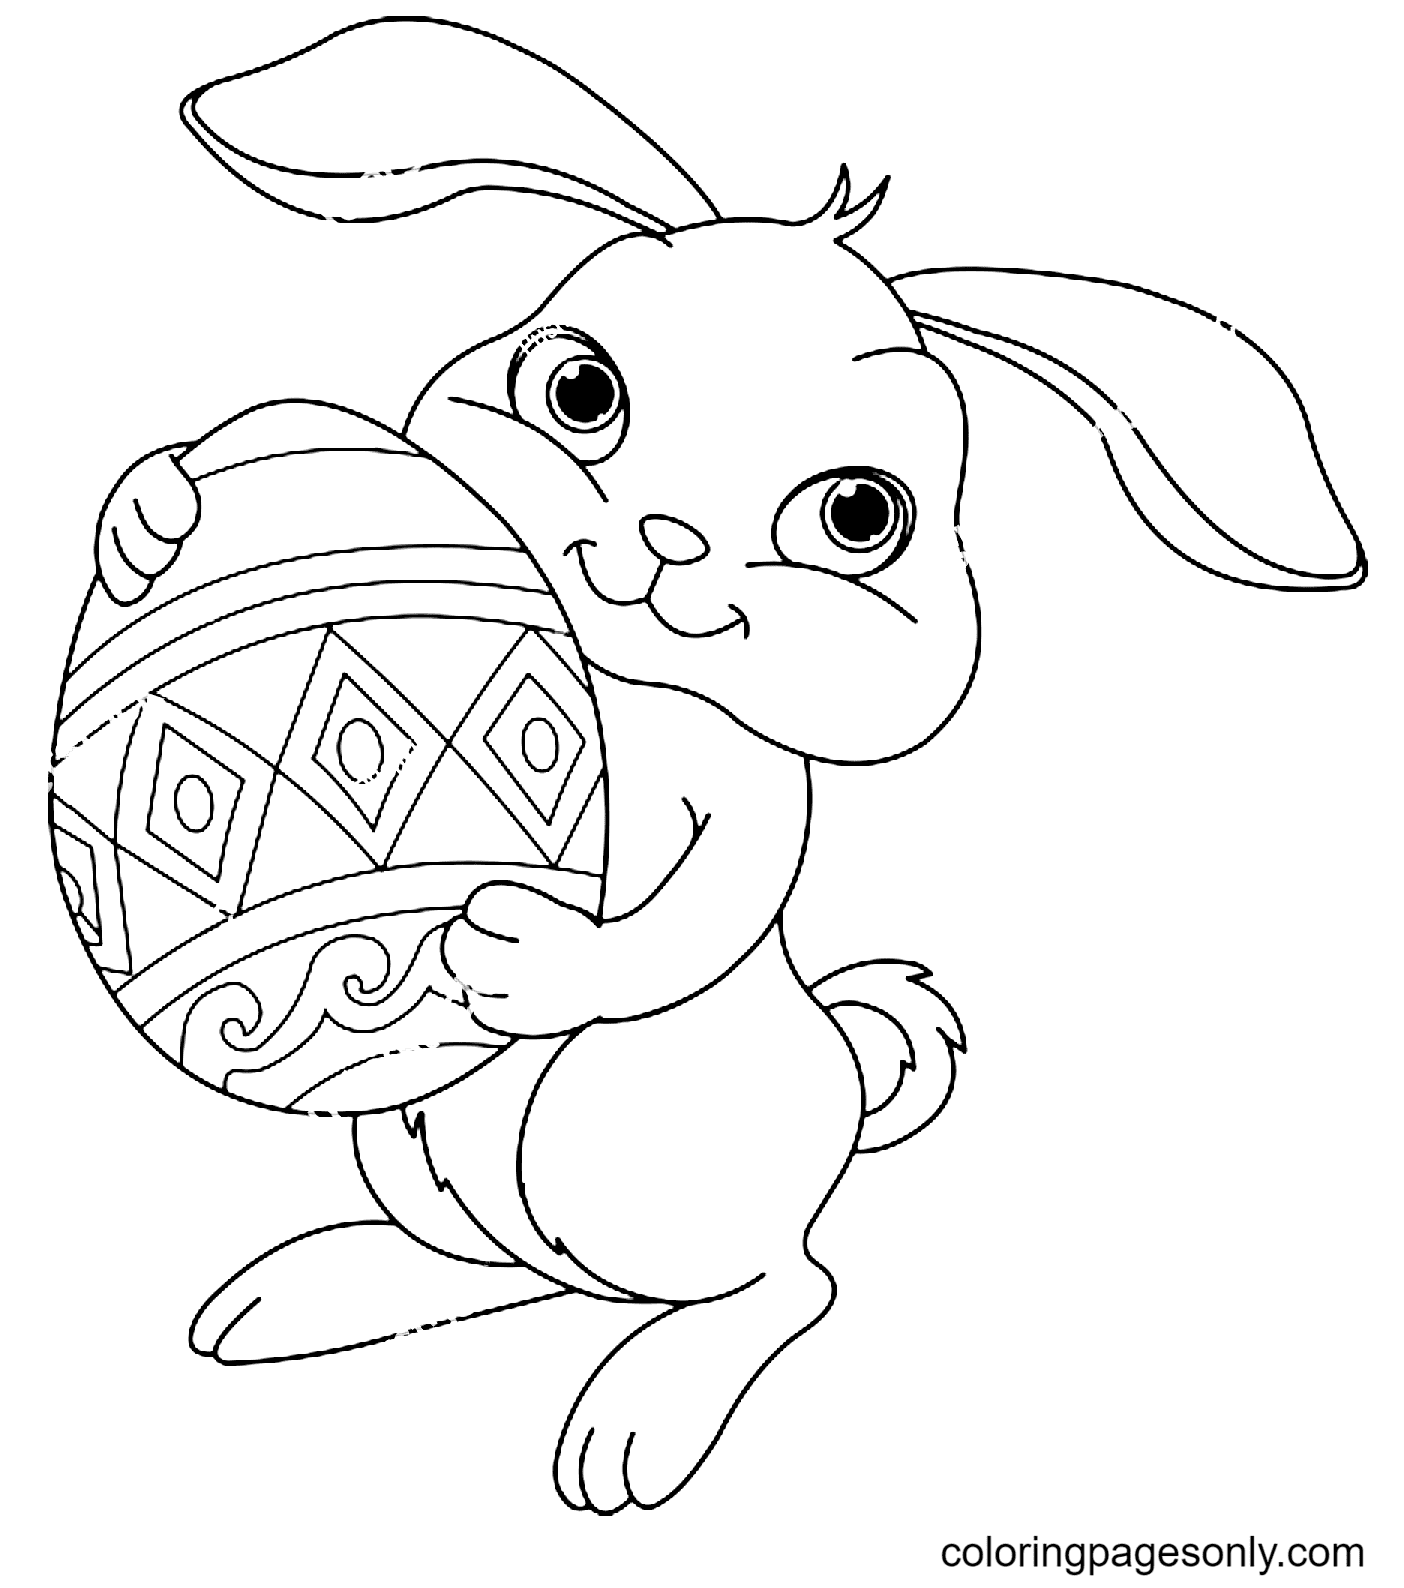 Cute Bunny with Easter Egg Coloring Page